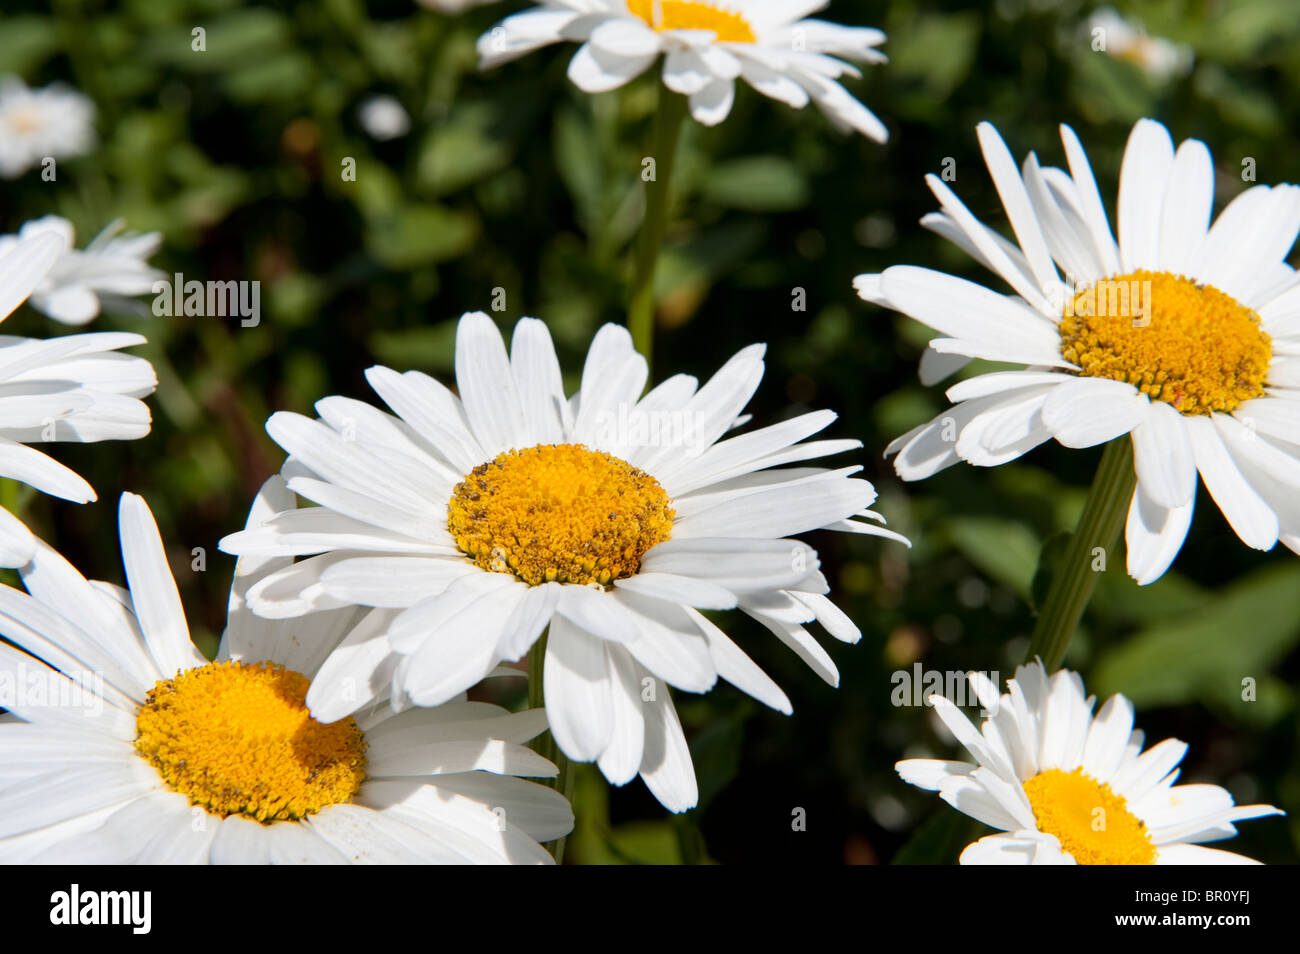 Daisy type flower stock photos daisy type flower stock images alamy close up of pretty daisy type flowers in summer stock image izmirmasajfo